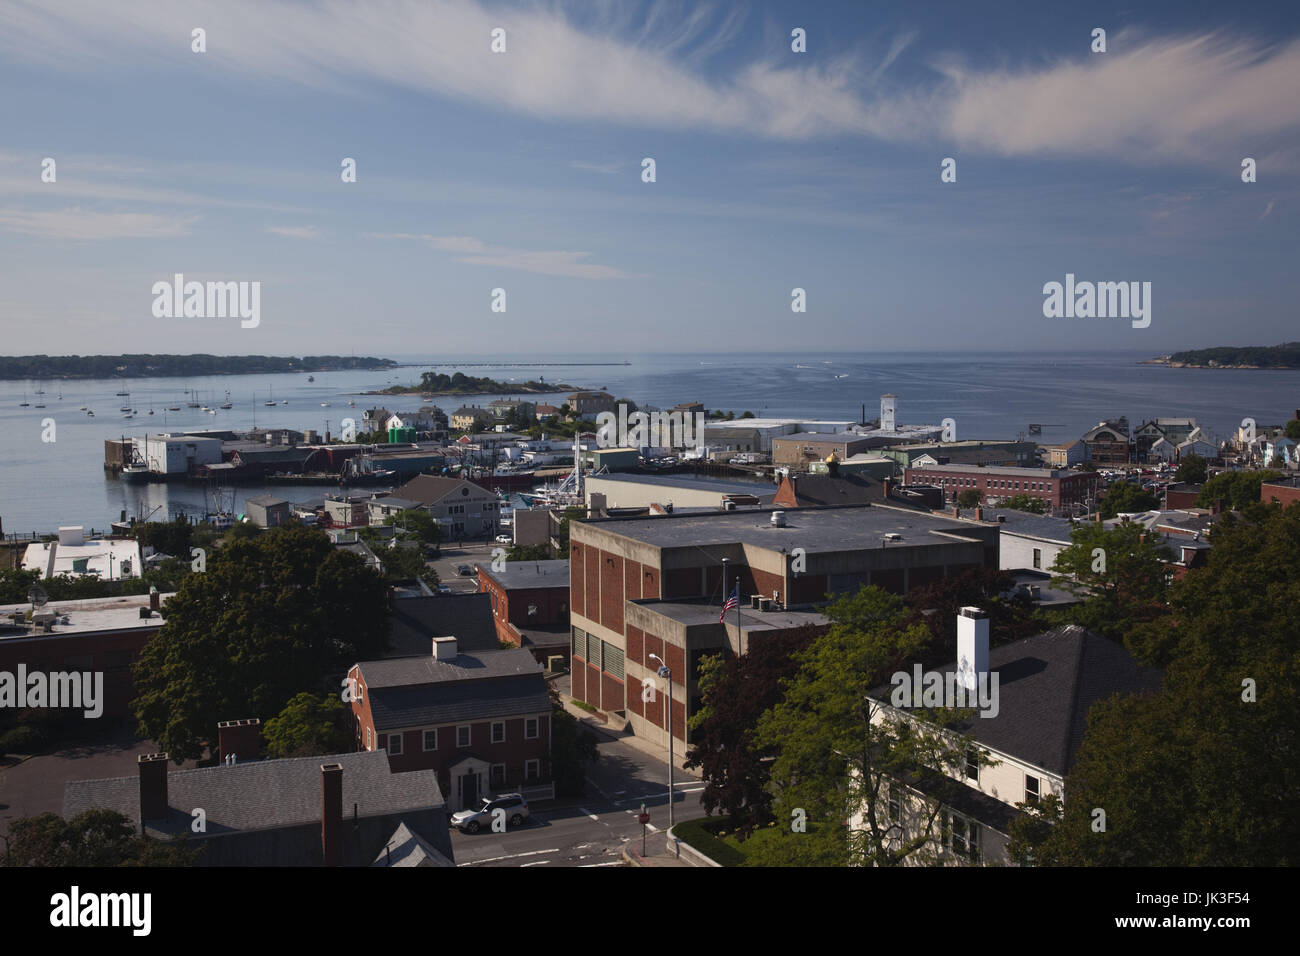 USA, Massachusetts, Cape Ann, Gloucester, town and port view from Gloucester City Hall - Stock Image